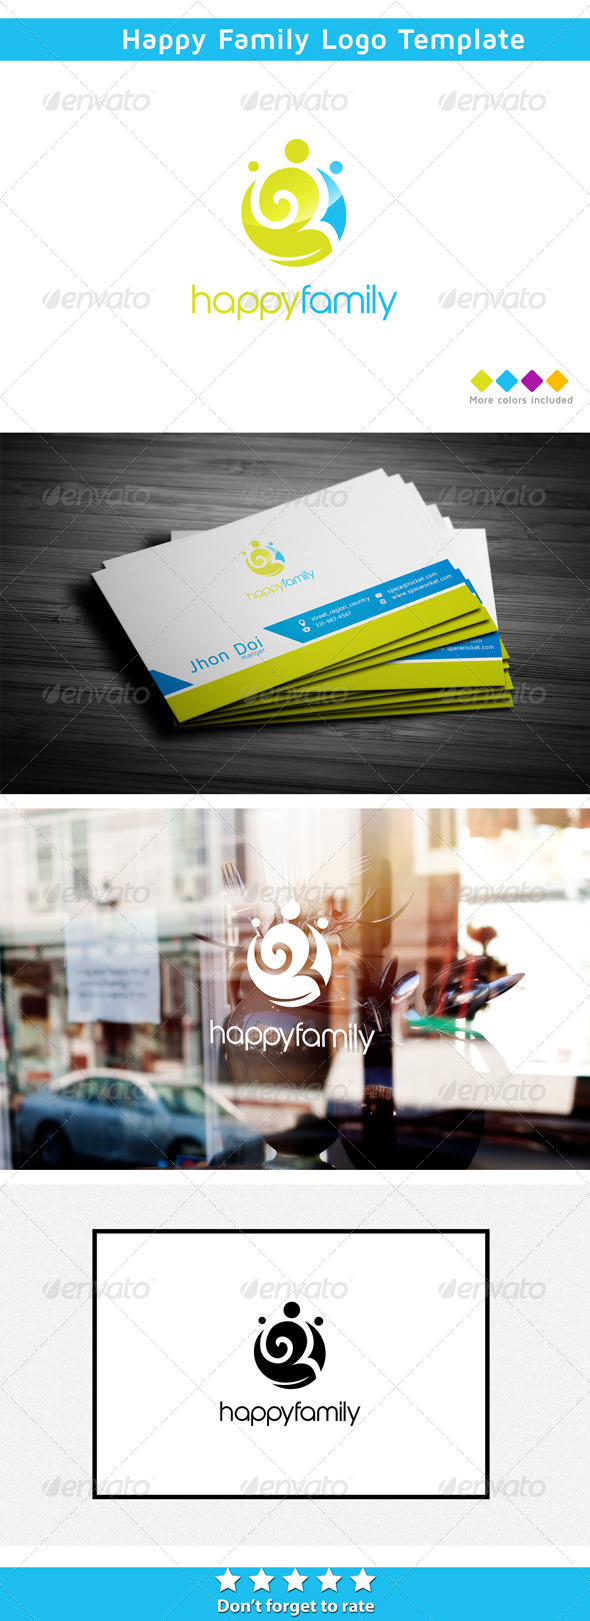 graphicriver healthy family 5852985 logo template humans family loved